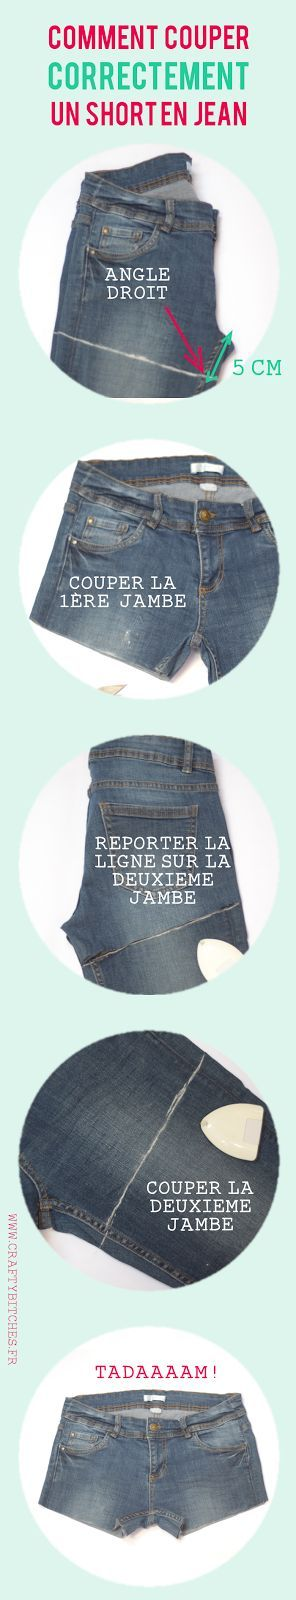 Les 25 meilleures id es de la cat gorie blog diy couture d co sur pinterest diy couture d co - Comment couper un pantalon en short ...